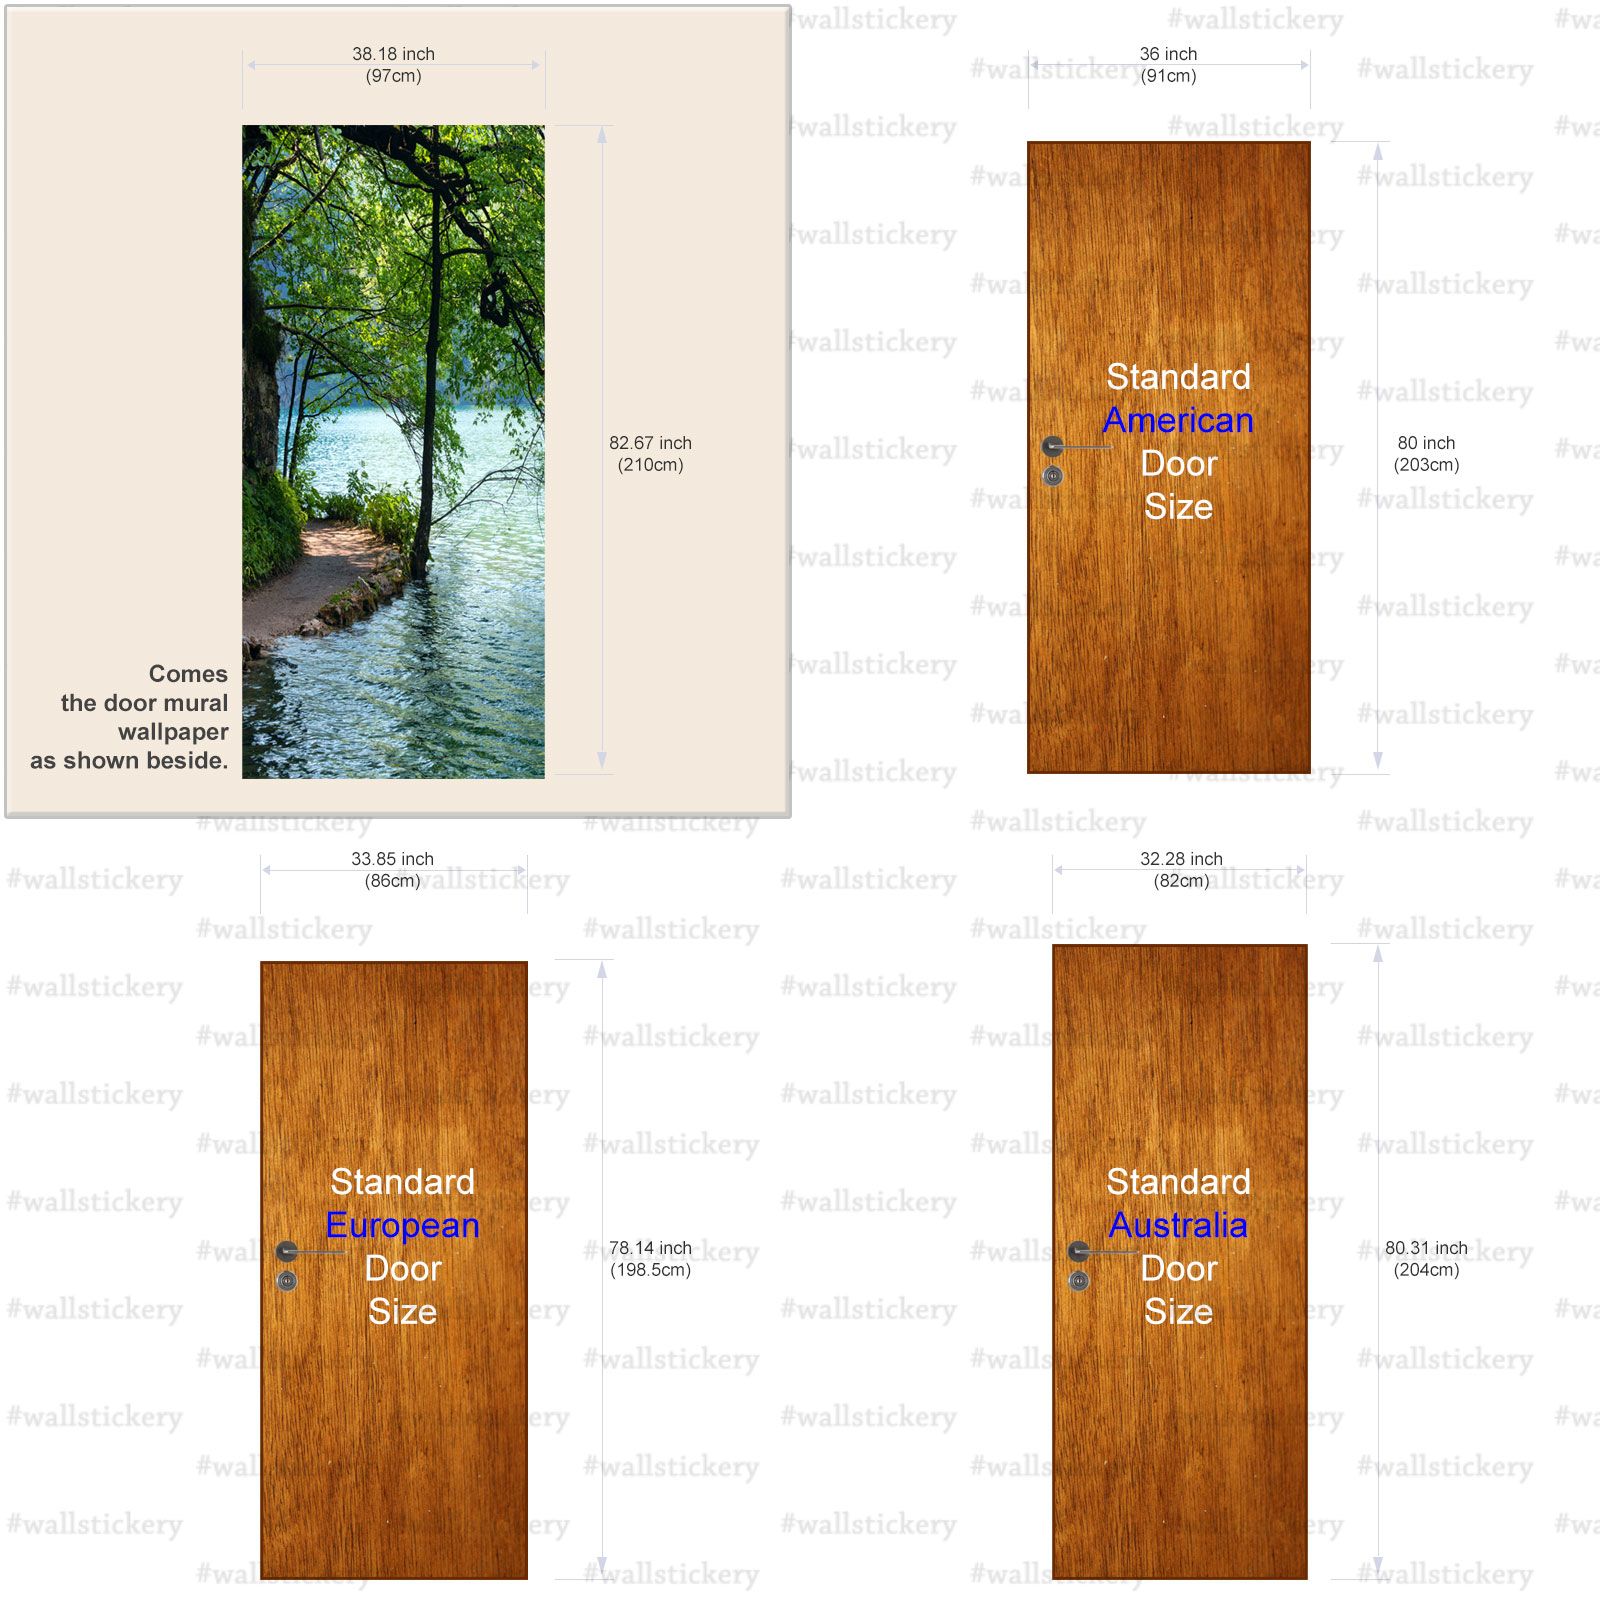 Lakeside Path Door Contact Paper Wall Sticker size  sc 1 st  wallstickery.com & Lakeside Path Door Contact Paper Wall Sticker